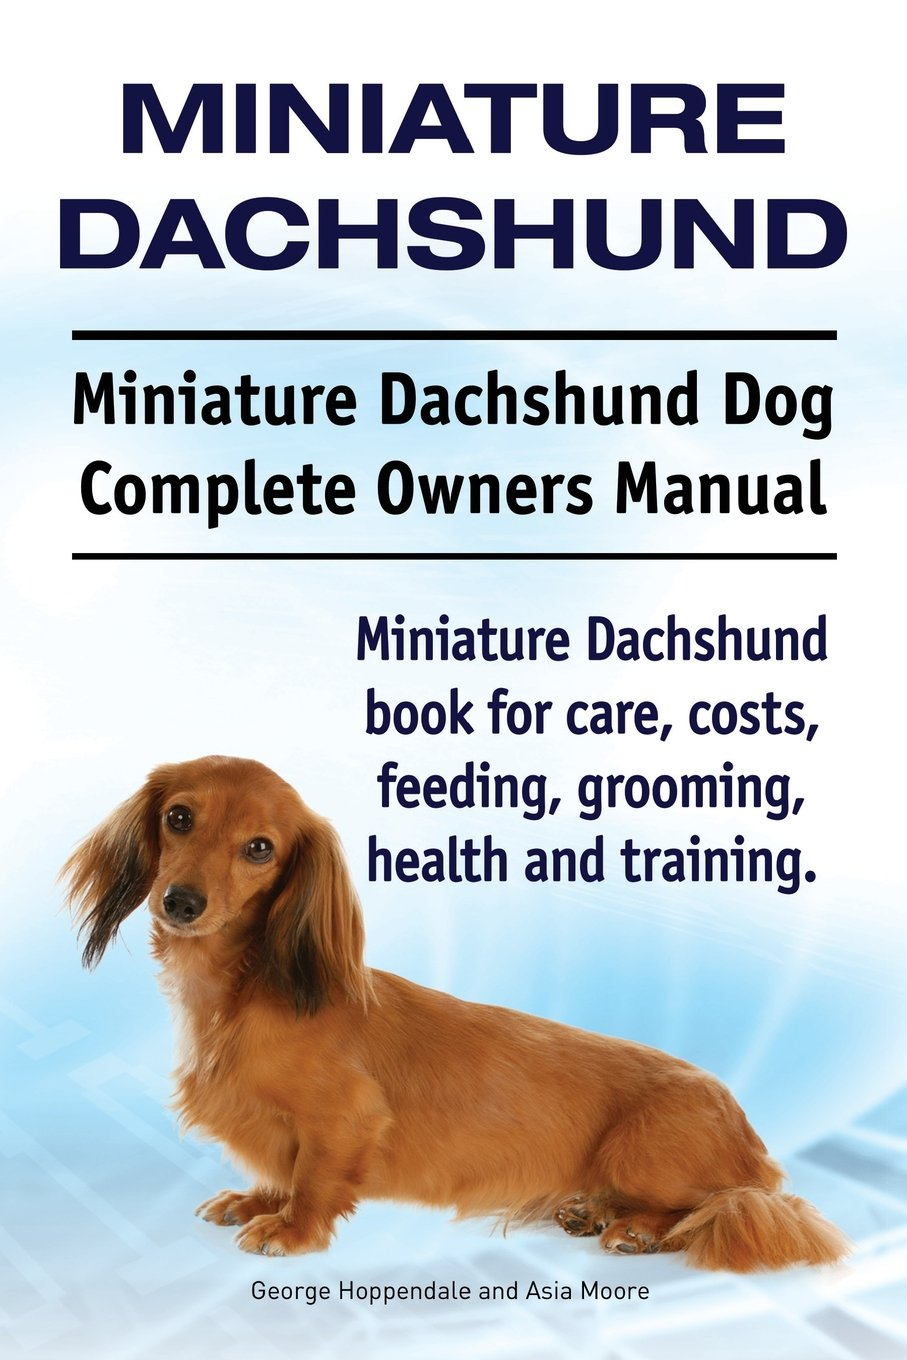 Miniature Dachshund Dog Complete Owners Manual. Miniature Dachshund book  for care, costs, feeding, grooming, health and training.